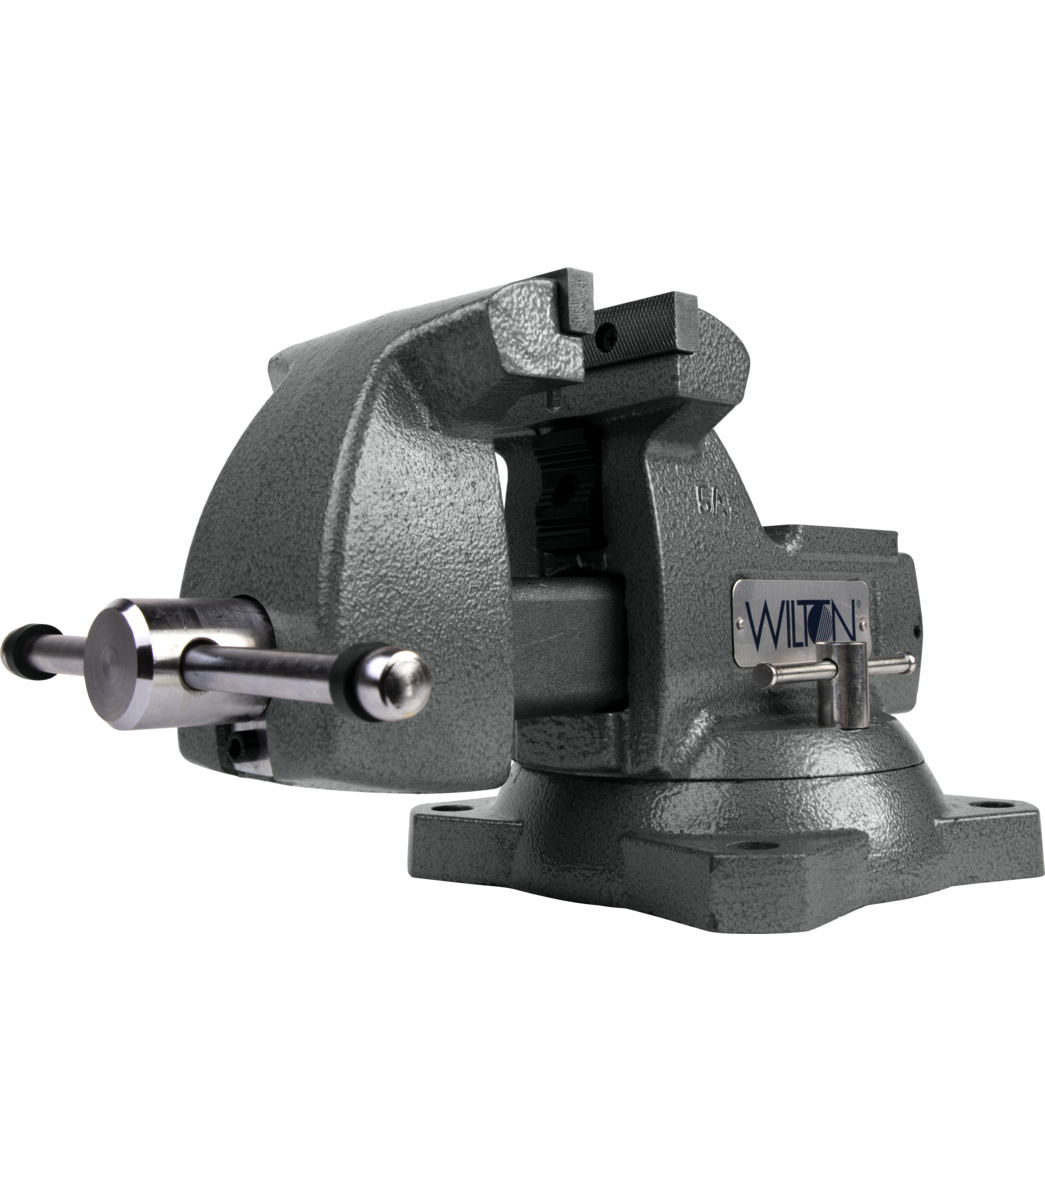 "Manual: Mechanics Vise 5"" Jaw with Swivel Base"